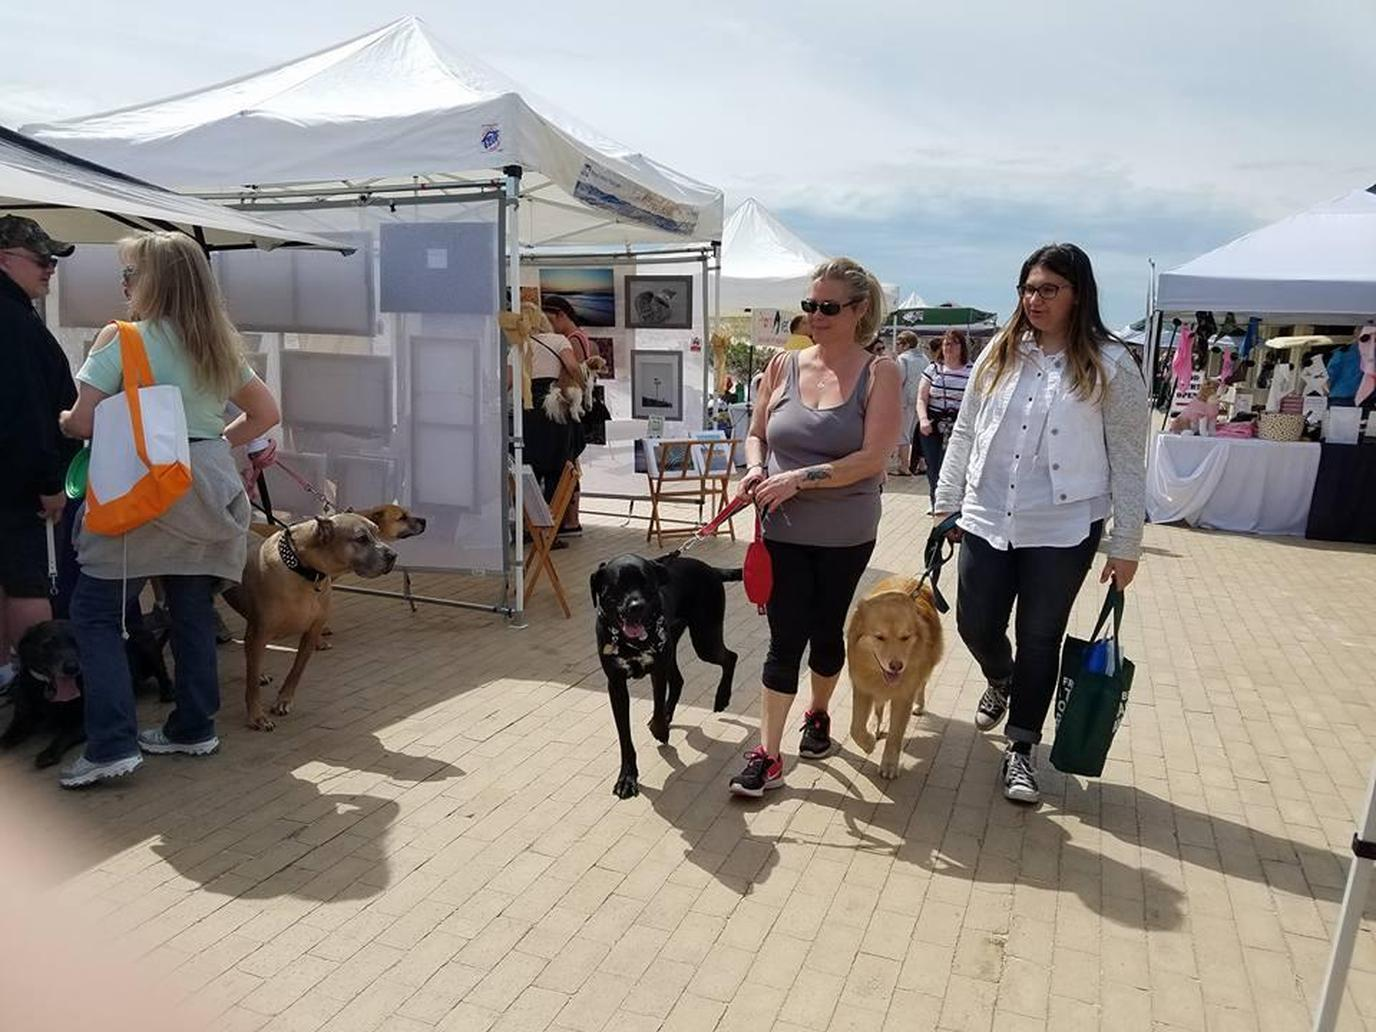 The May Day pet-friendly festival and expo takes place right on the beach.